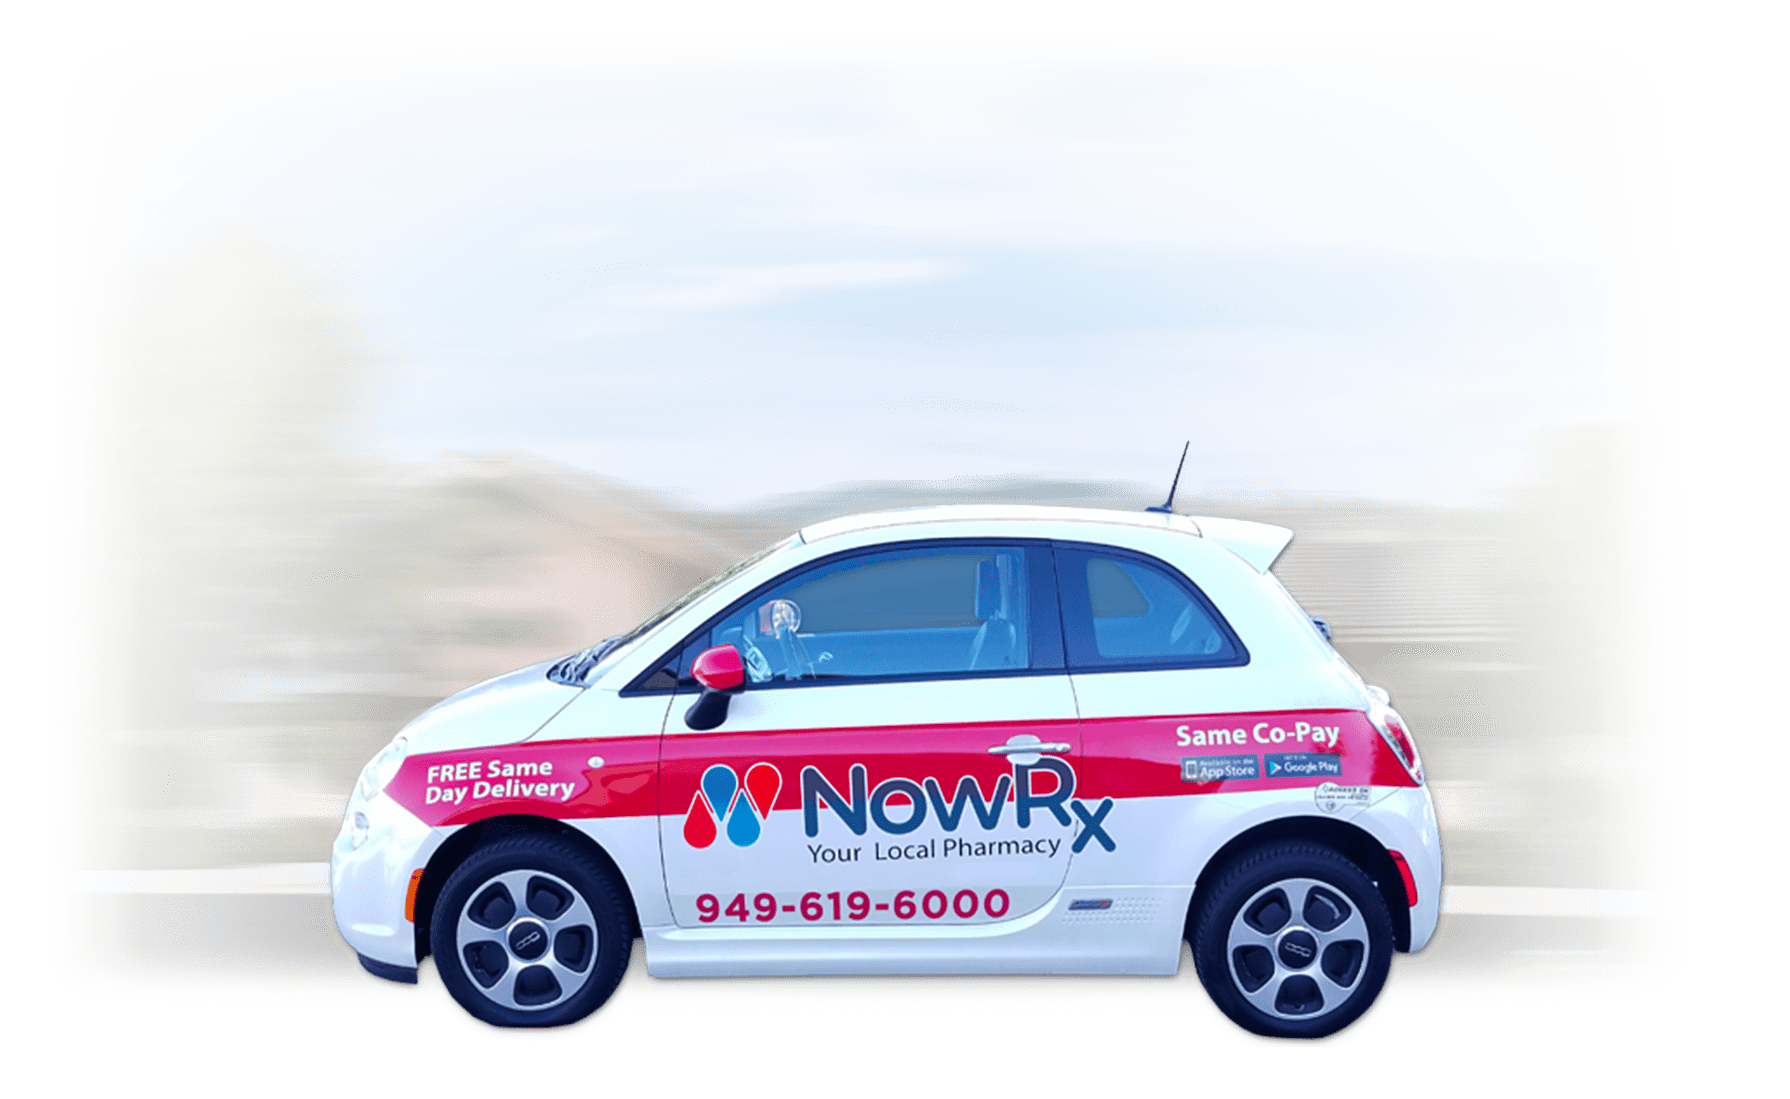 NowRx Pharmacy Delivery Car